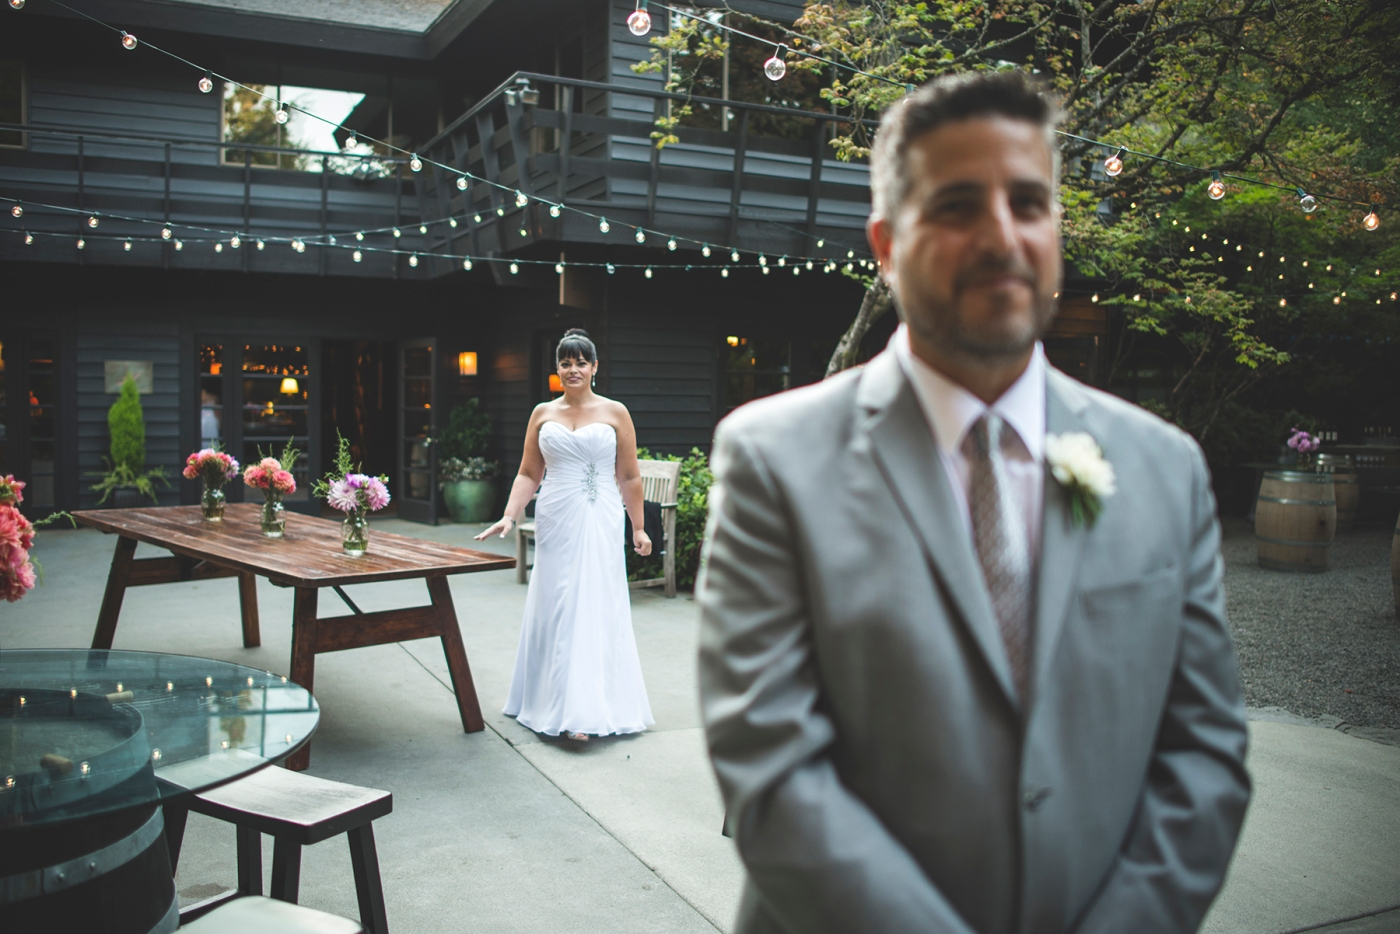 ang_matt_jm_woodinville_2016_js_photography_wedding_dsc_3033